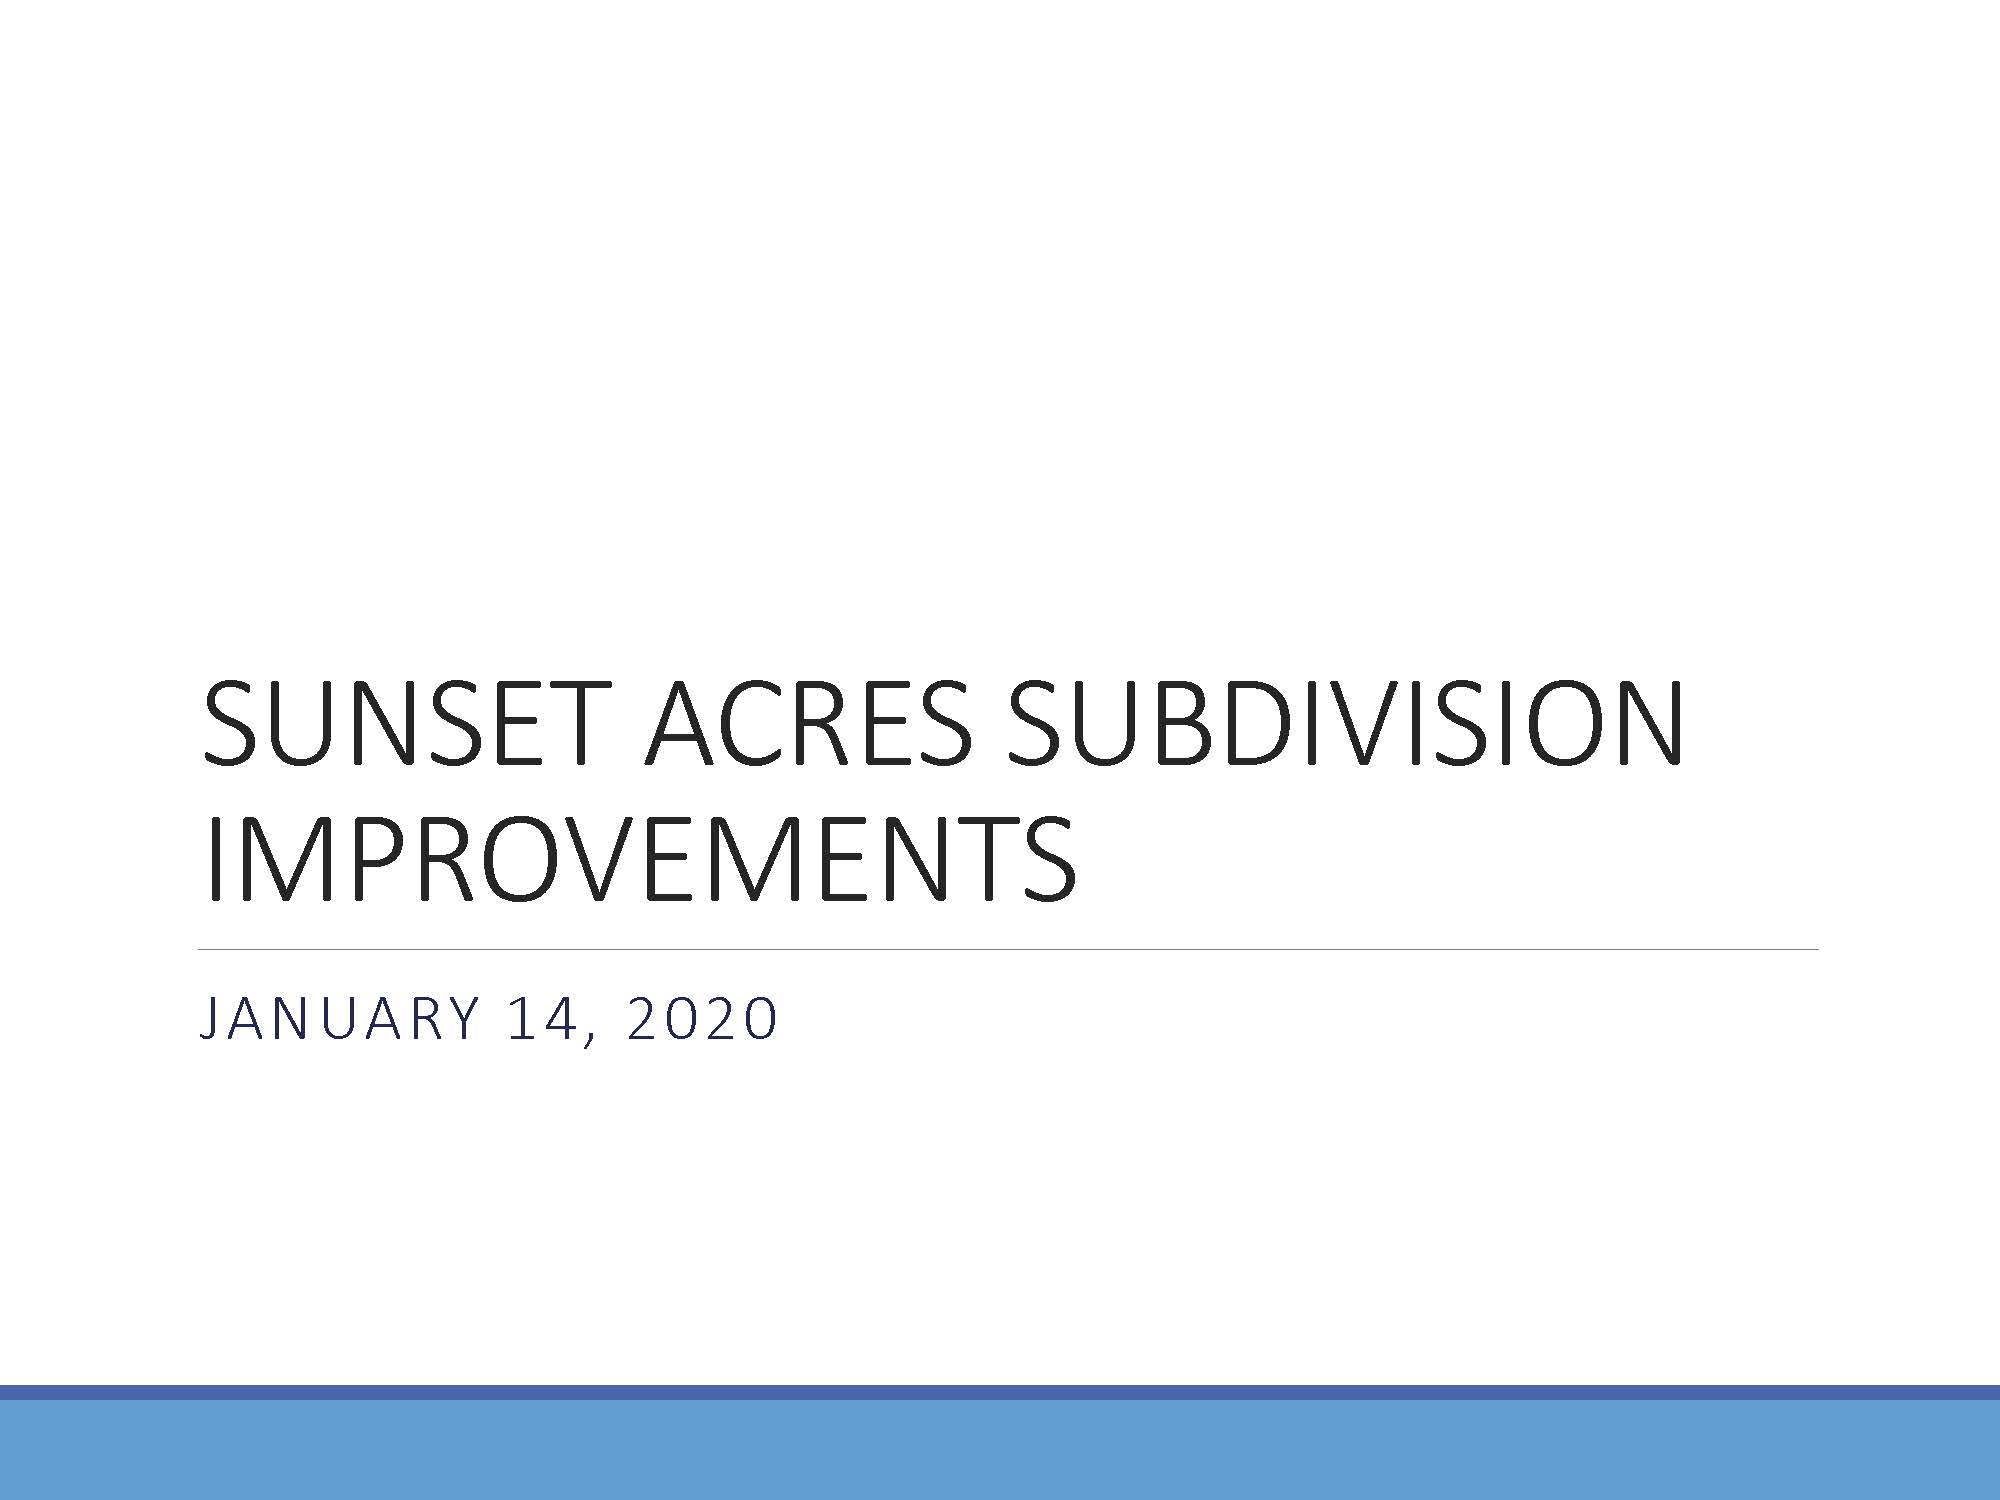 Pages from SUNSET ACRES SUBDIVISION IMPROVEMENTS